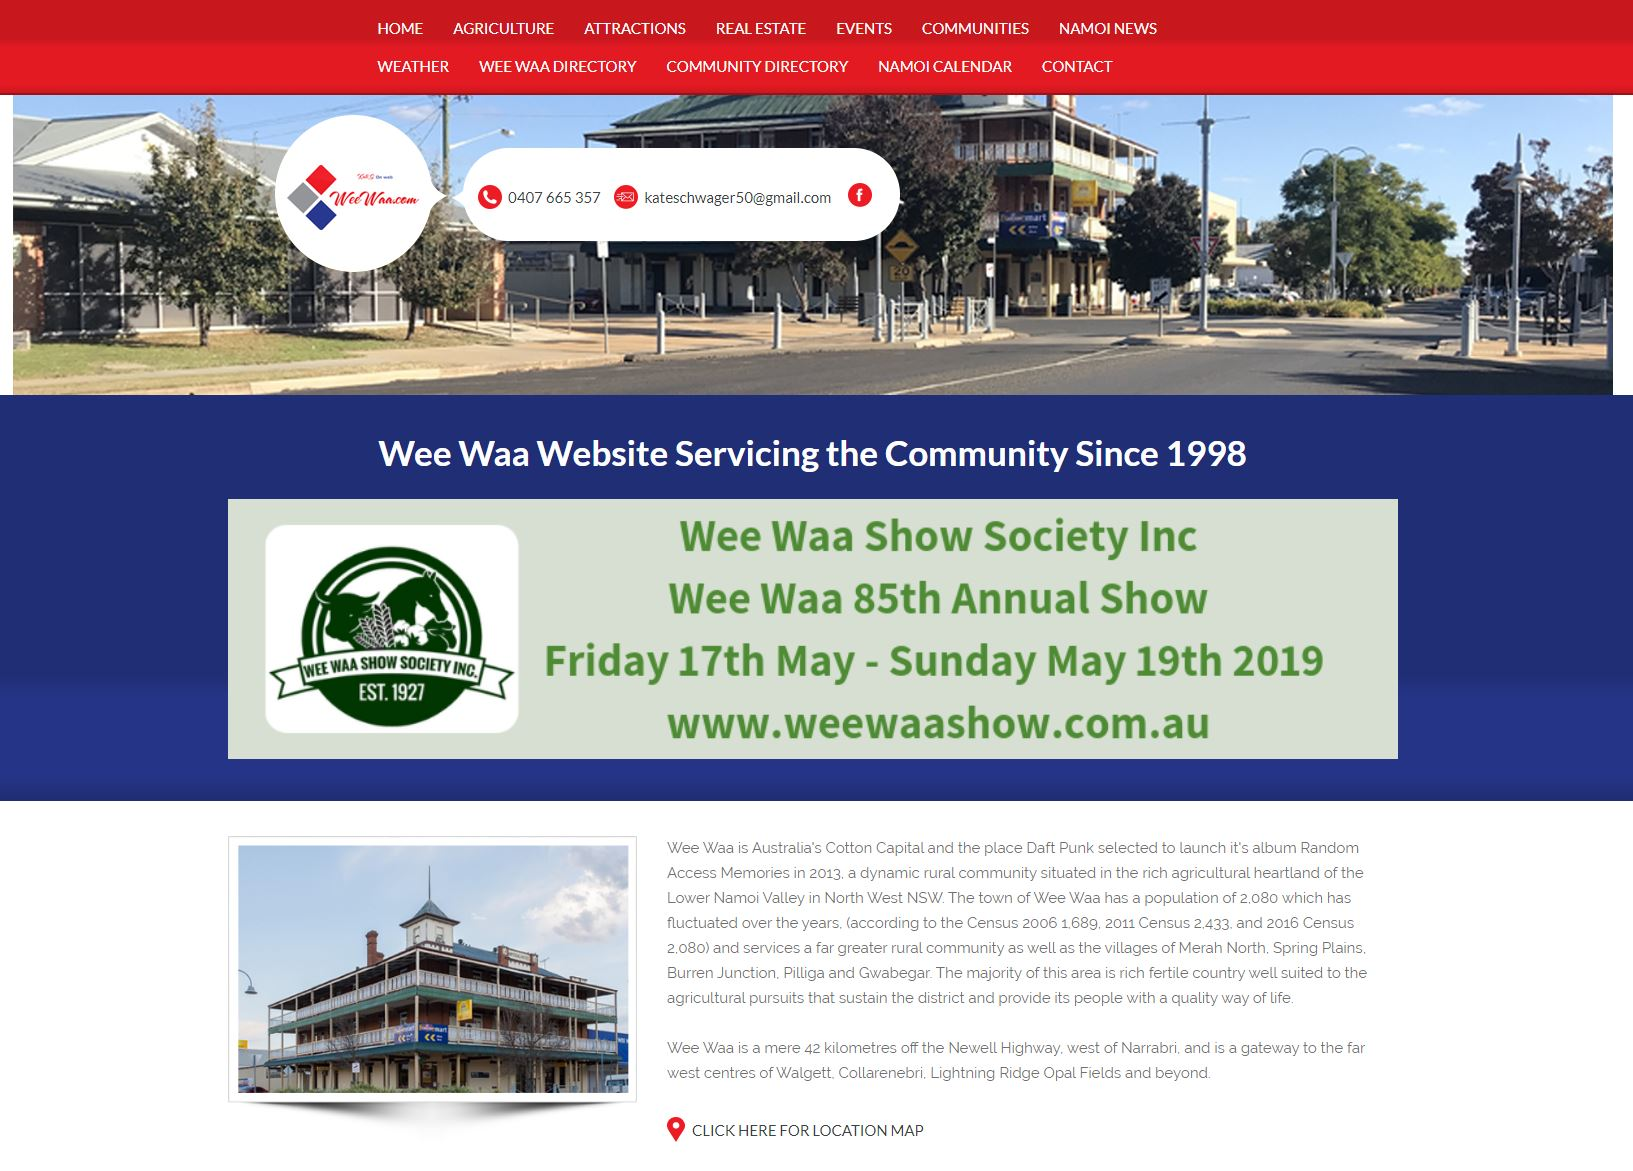 Wee Waa Website